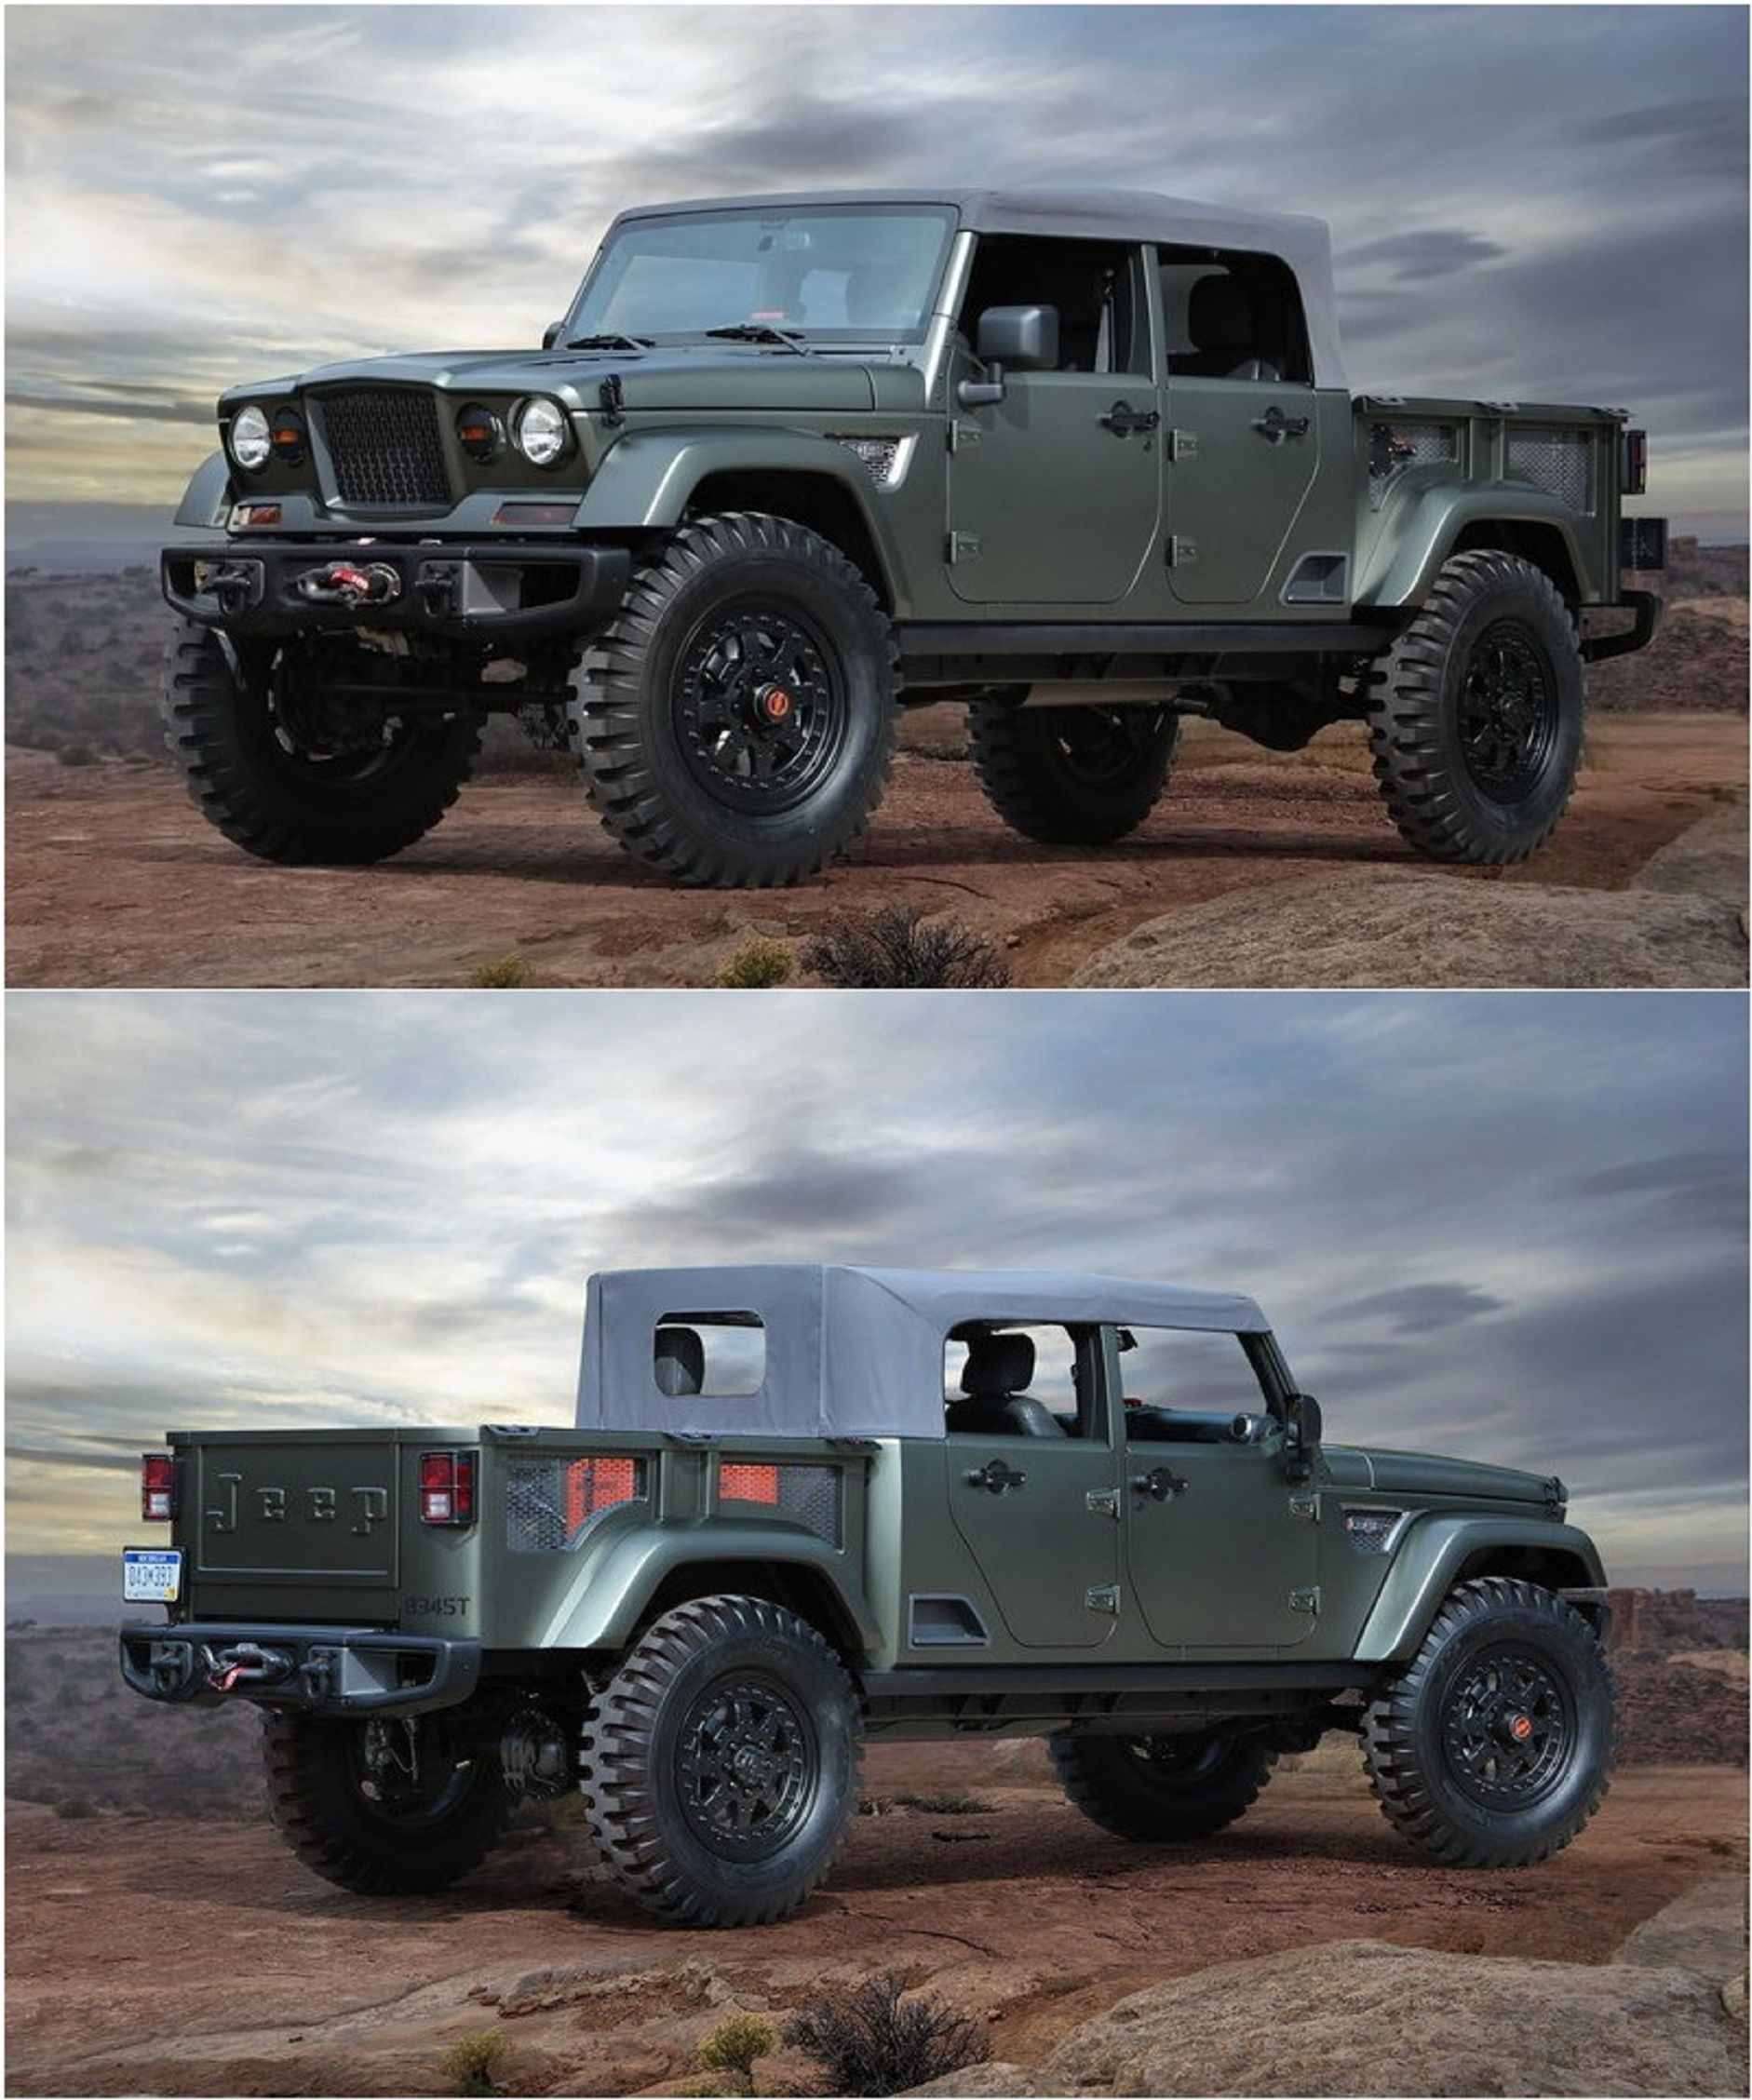 Jeep Crew Chief 715. http://topspeed.com/trucks/truck-reviews/jeep ...